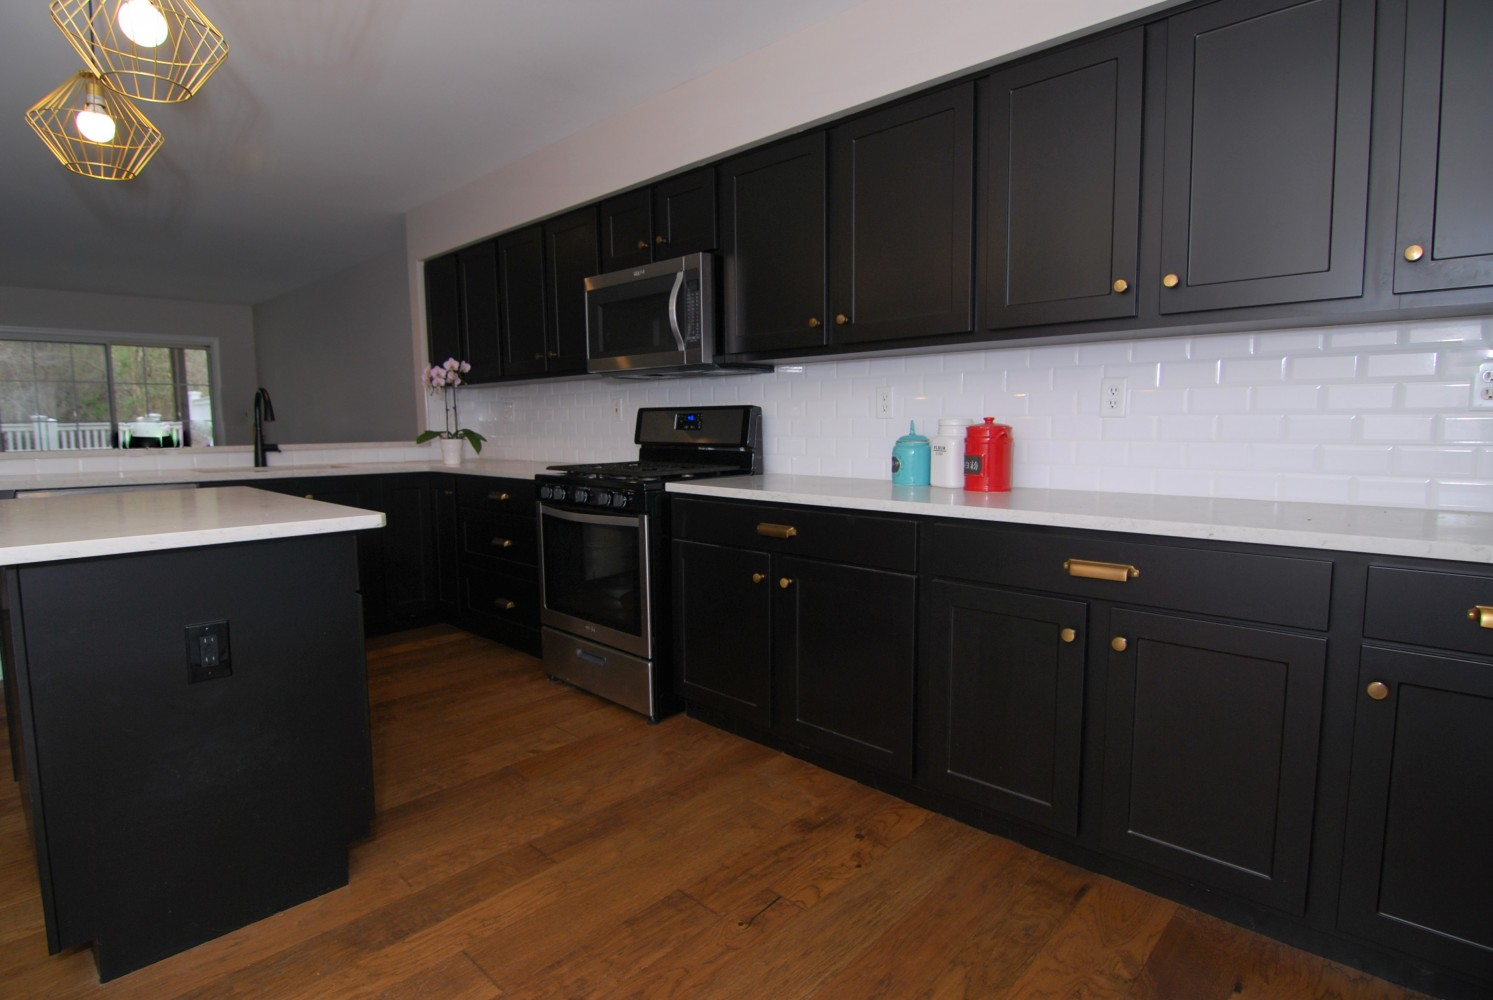 Reface kitchen black cabinets satin gold knobs | Pennington NJ | Distinctive Interior Designs